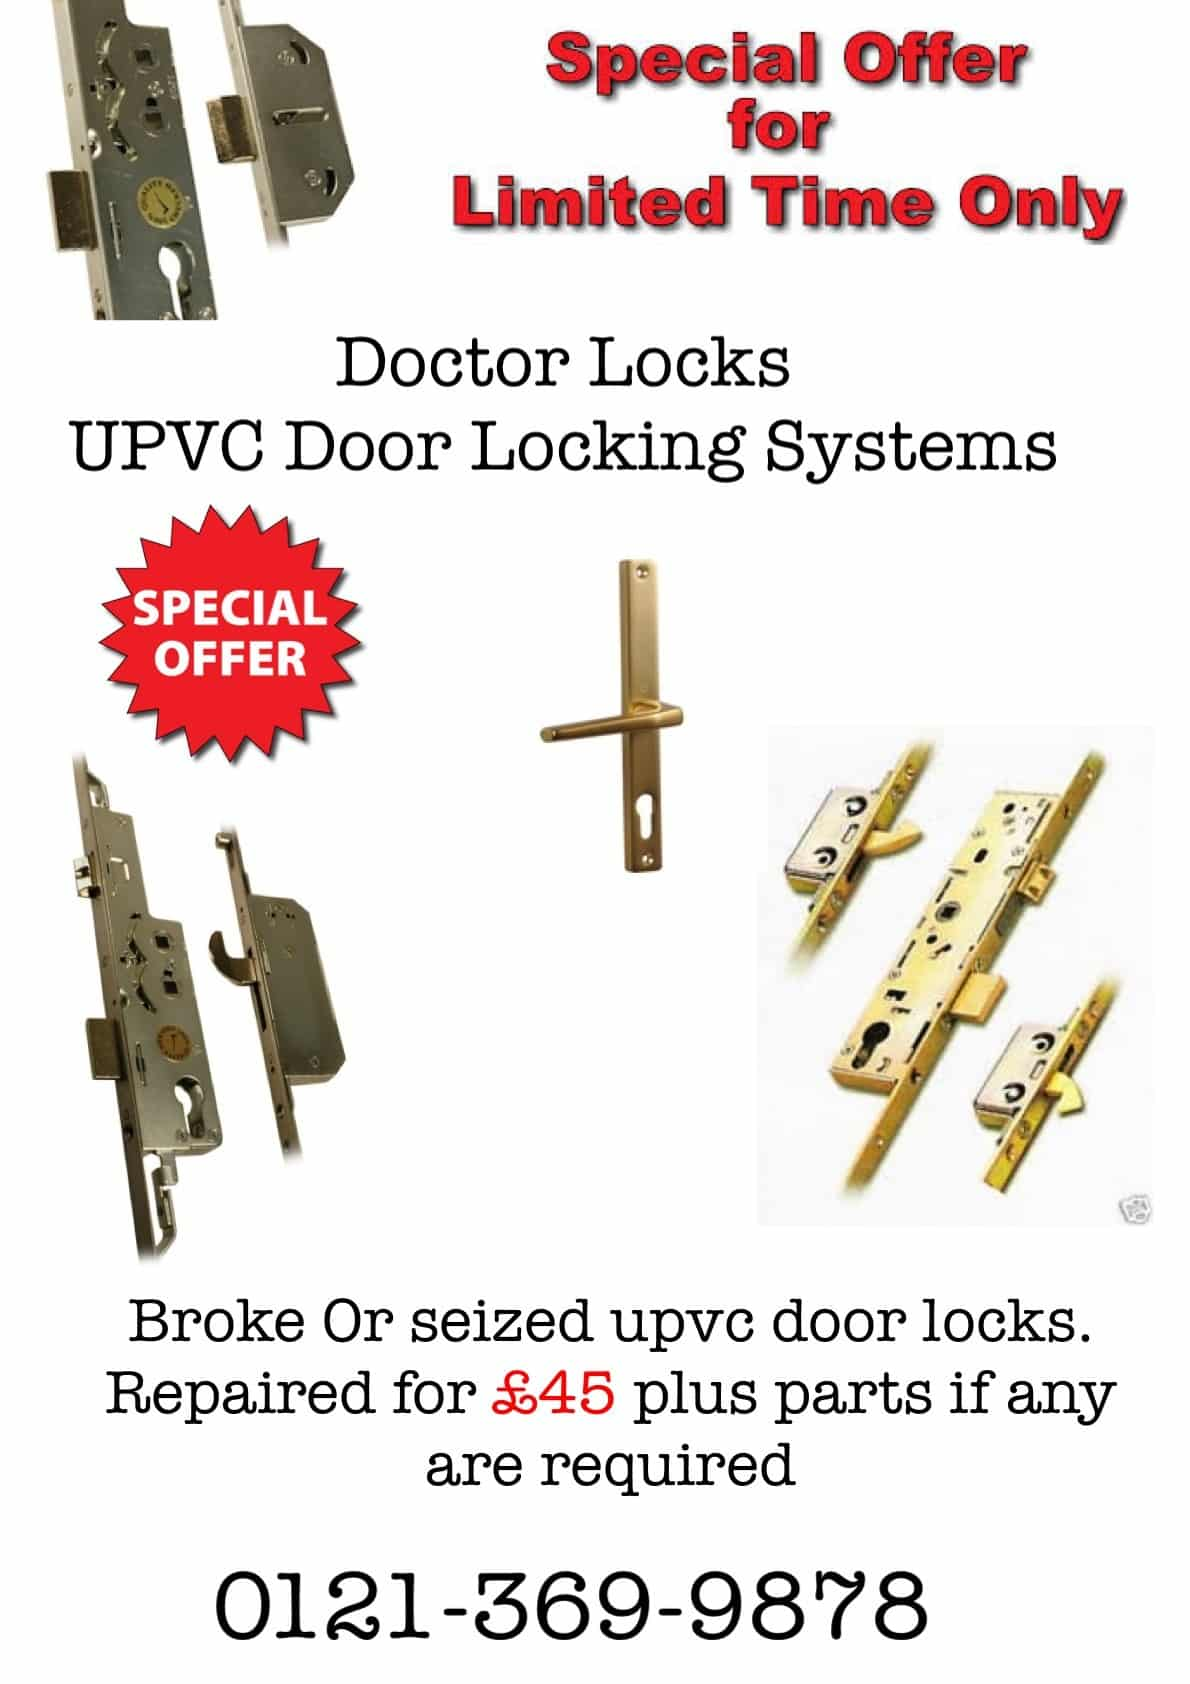 Doctor Locks UPVC Door Locking Systems